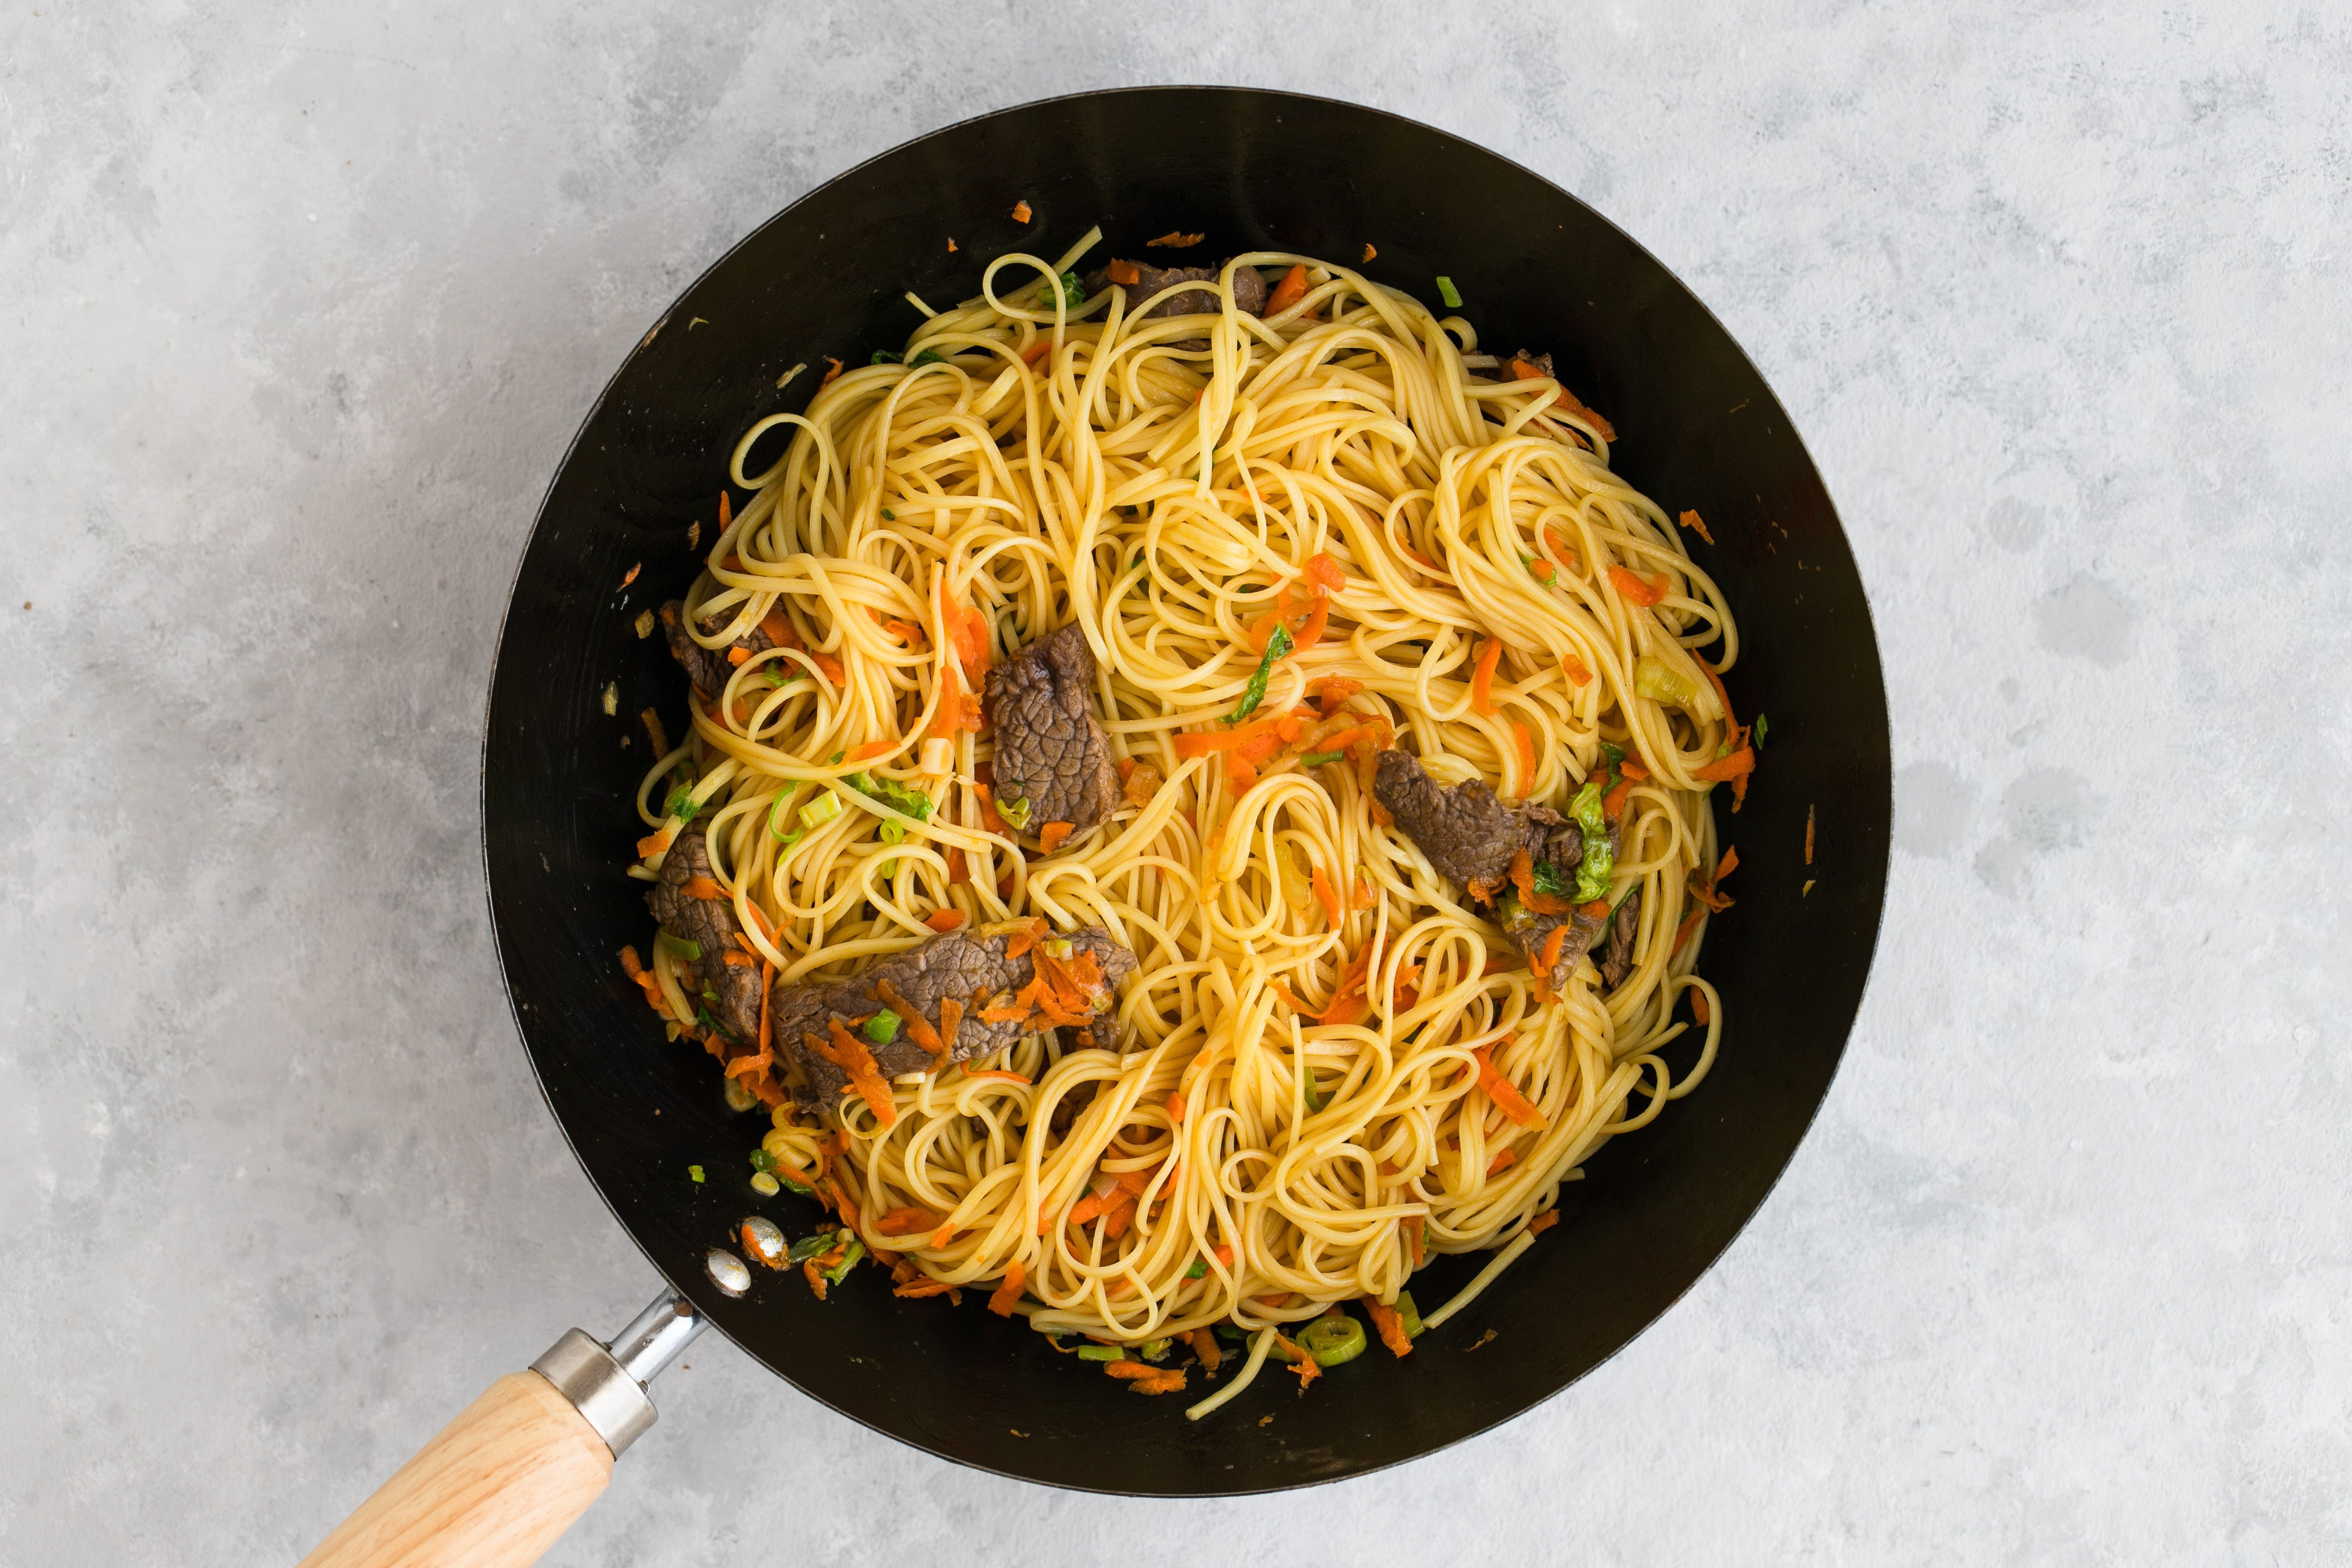 Tossed noodles and beef in wok